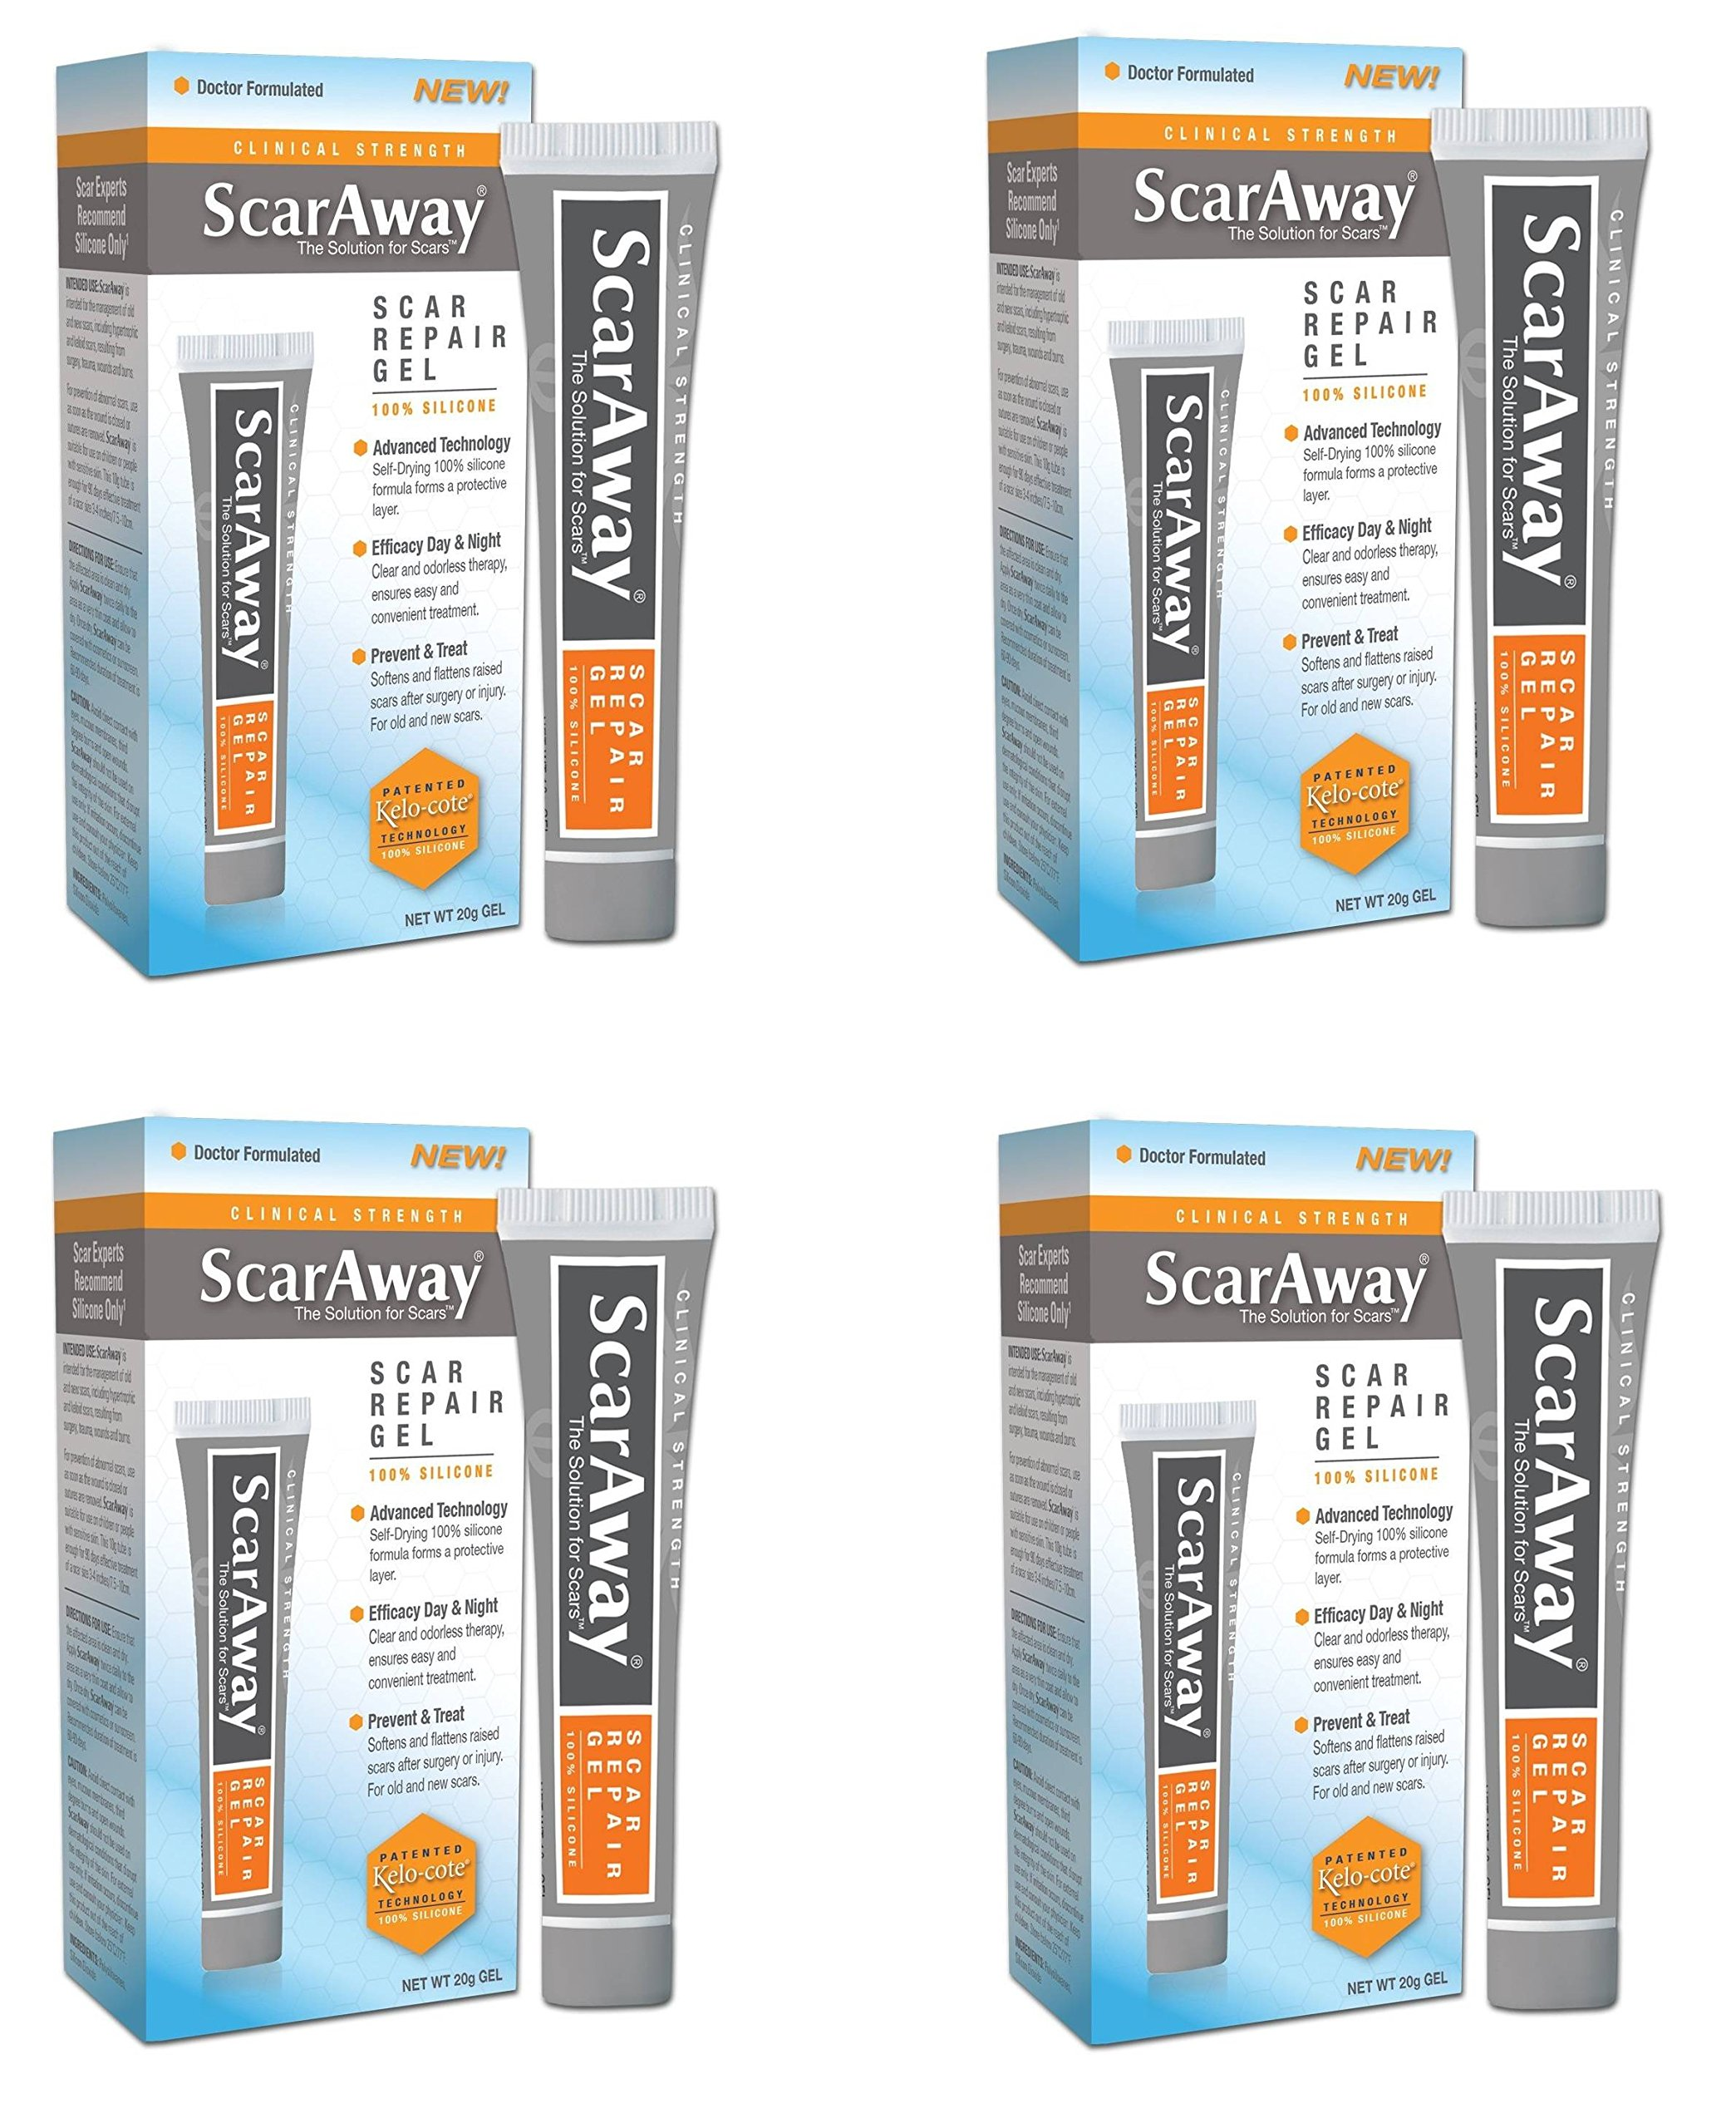 ScarAway 100% Silicone Self Drying Scar Repair Gel with Patented Kelo-cote Technology jQEkke, 20 grams, Pack of 4